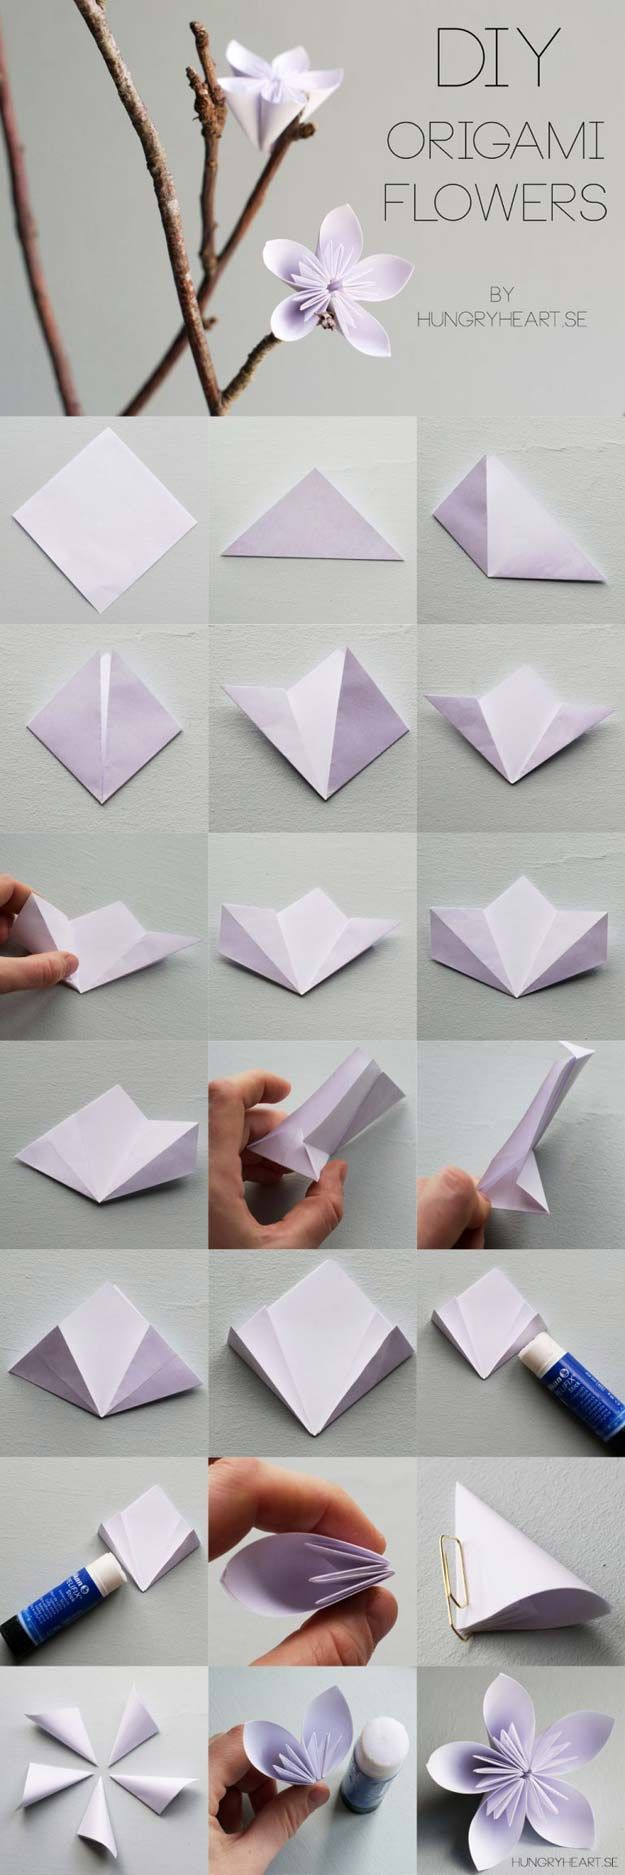 Origami flowers for beginners - How to make origami flowers very ... | 1875x625